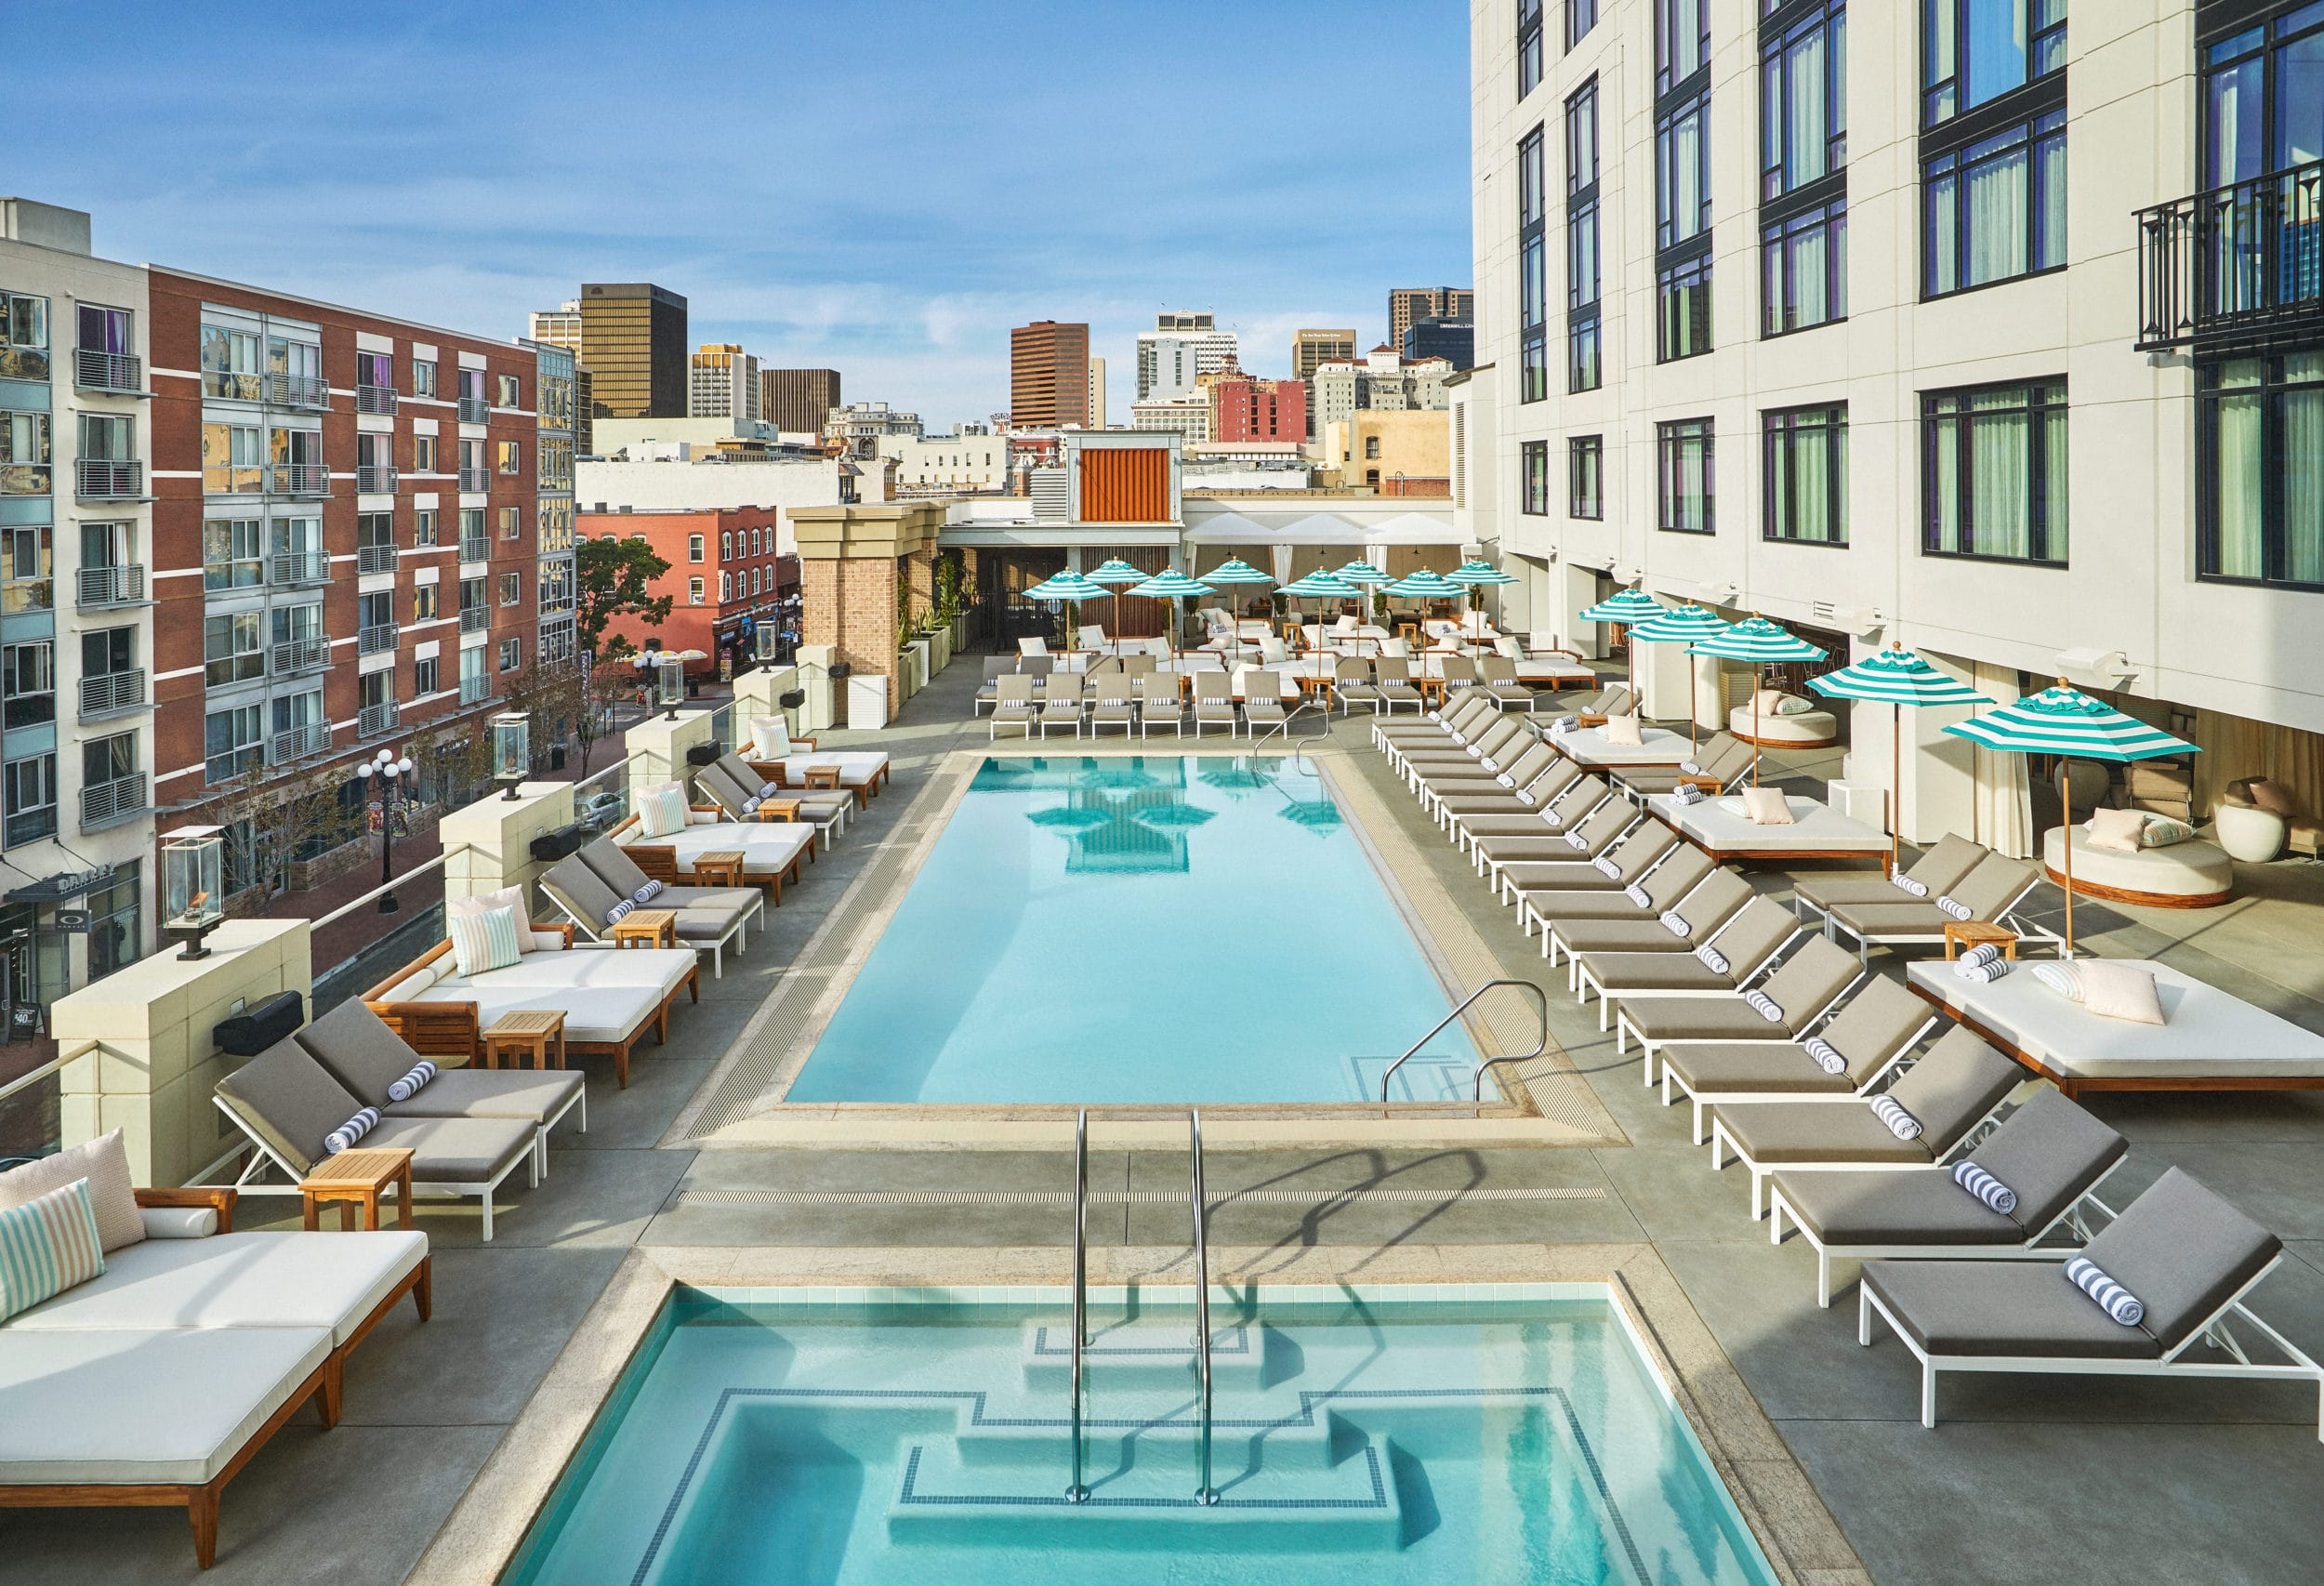 The pool at Pendry San Diego